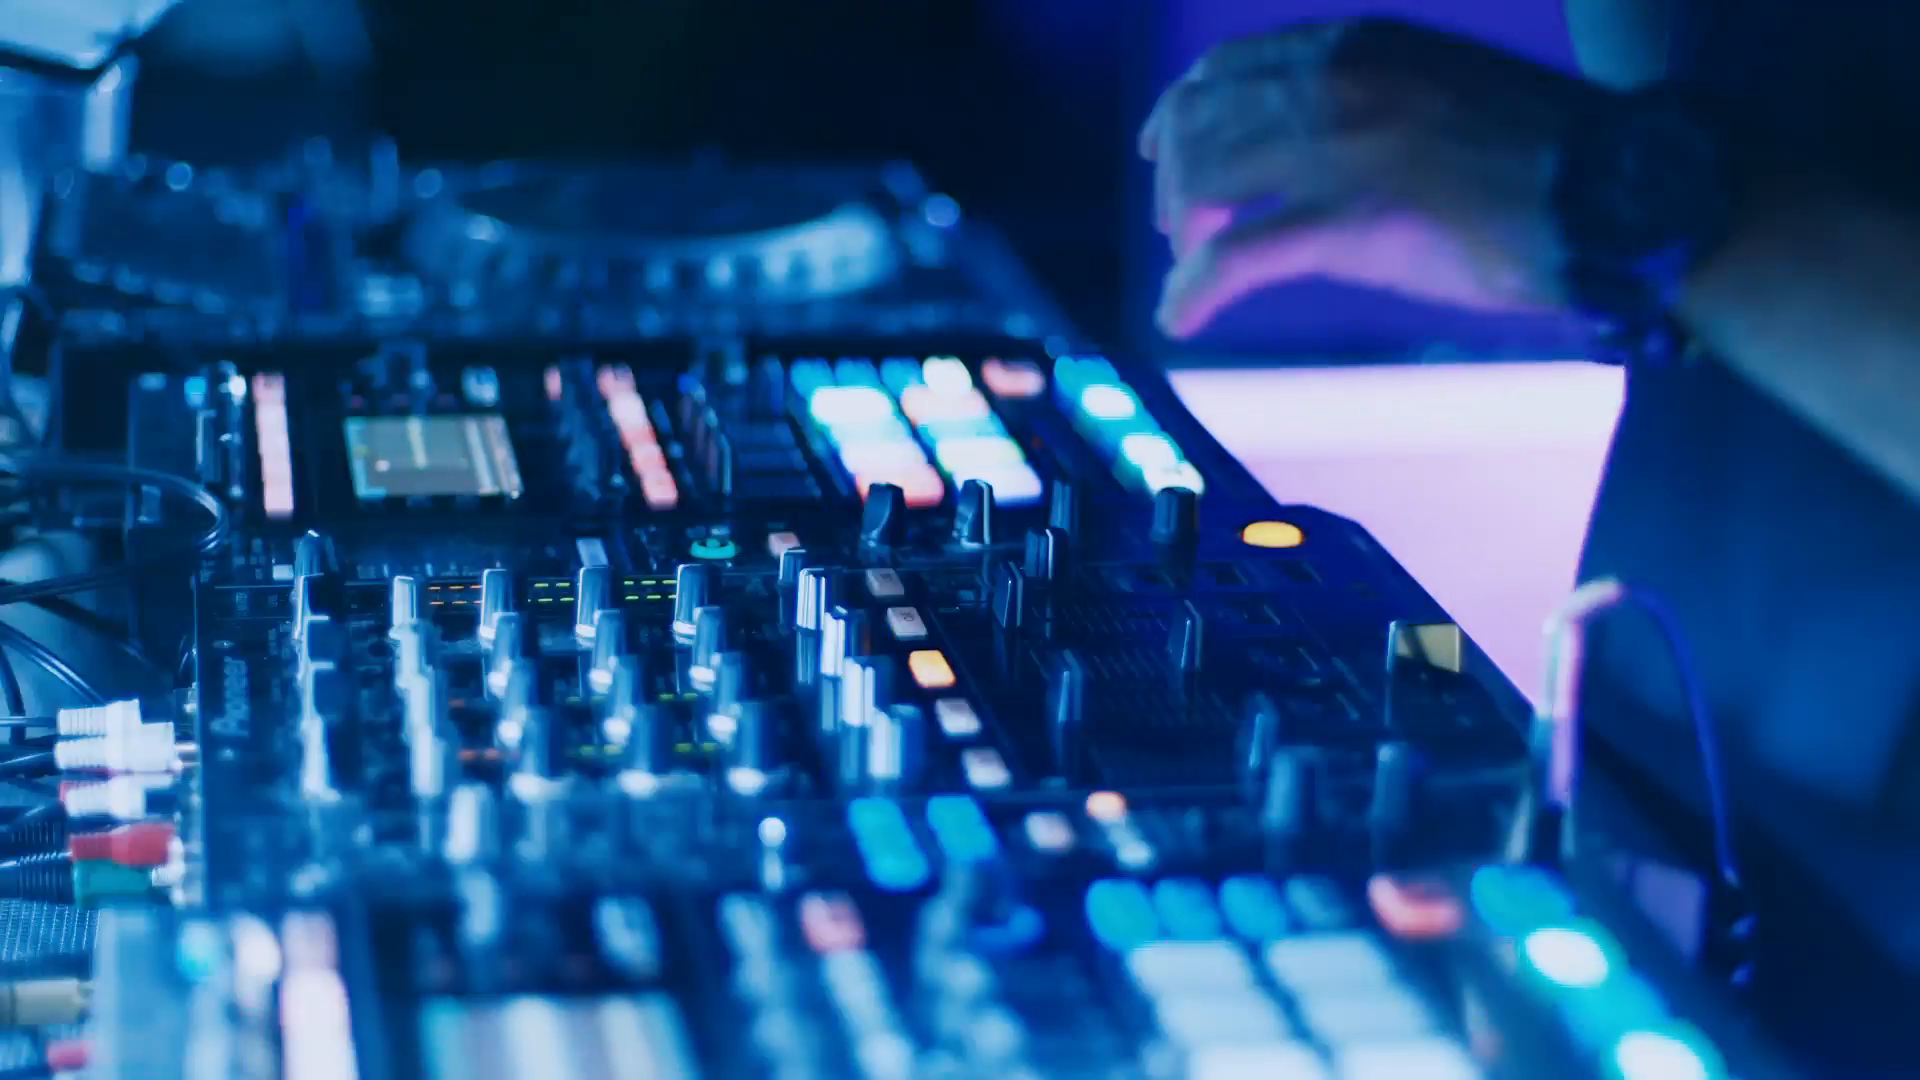 dj-mixing-tracks-on-console-at-dance-music-partya-dj-behind-the-console-on-stage-mixing-tracks-in-atmospheric-dance-party-strobing-and-flashing-lights-more-from-this-collection-below_ejrg-fu5__F0003